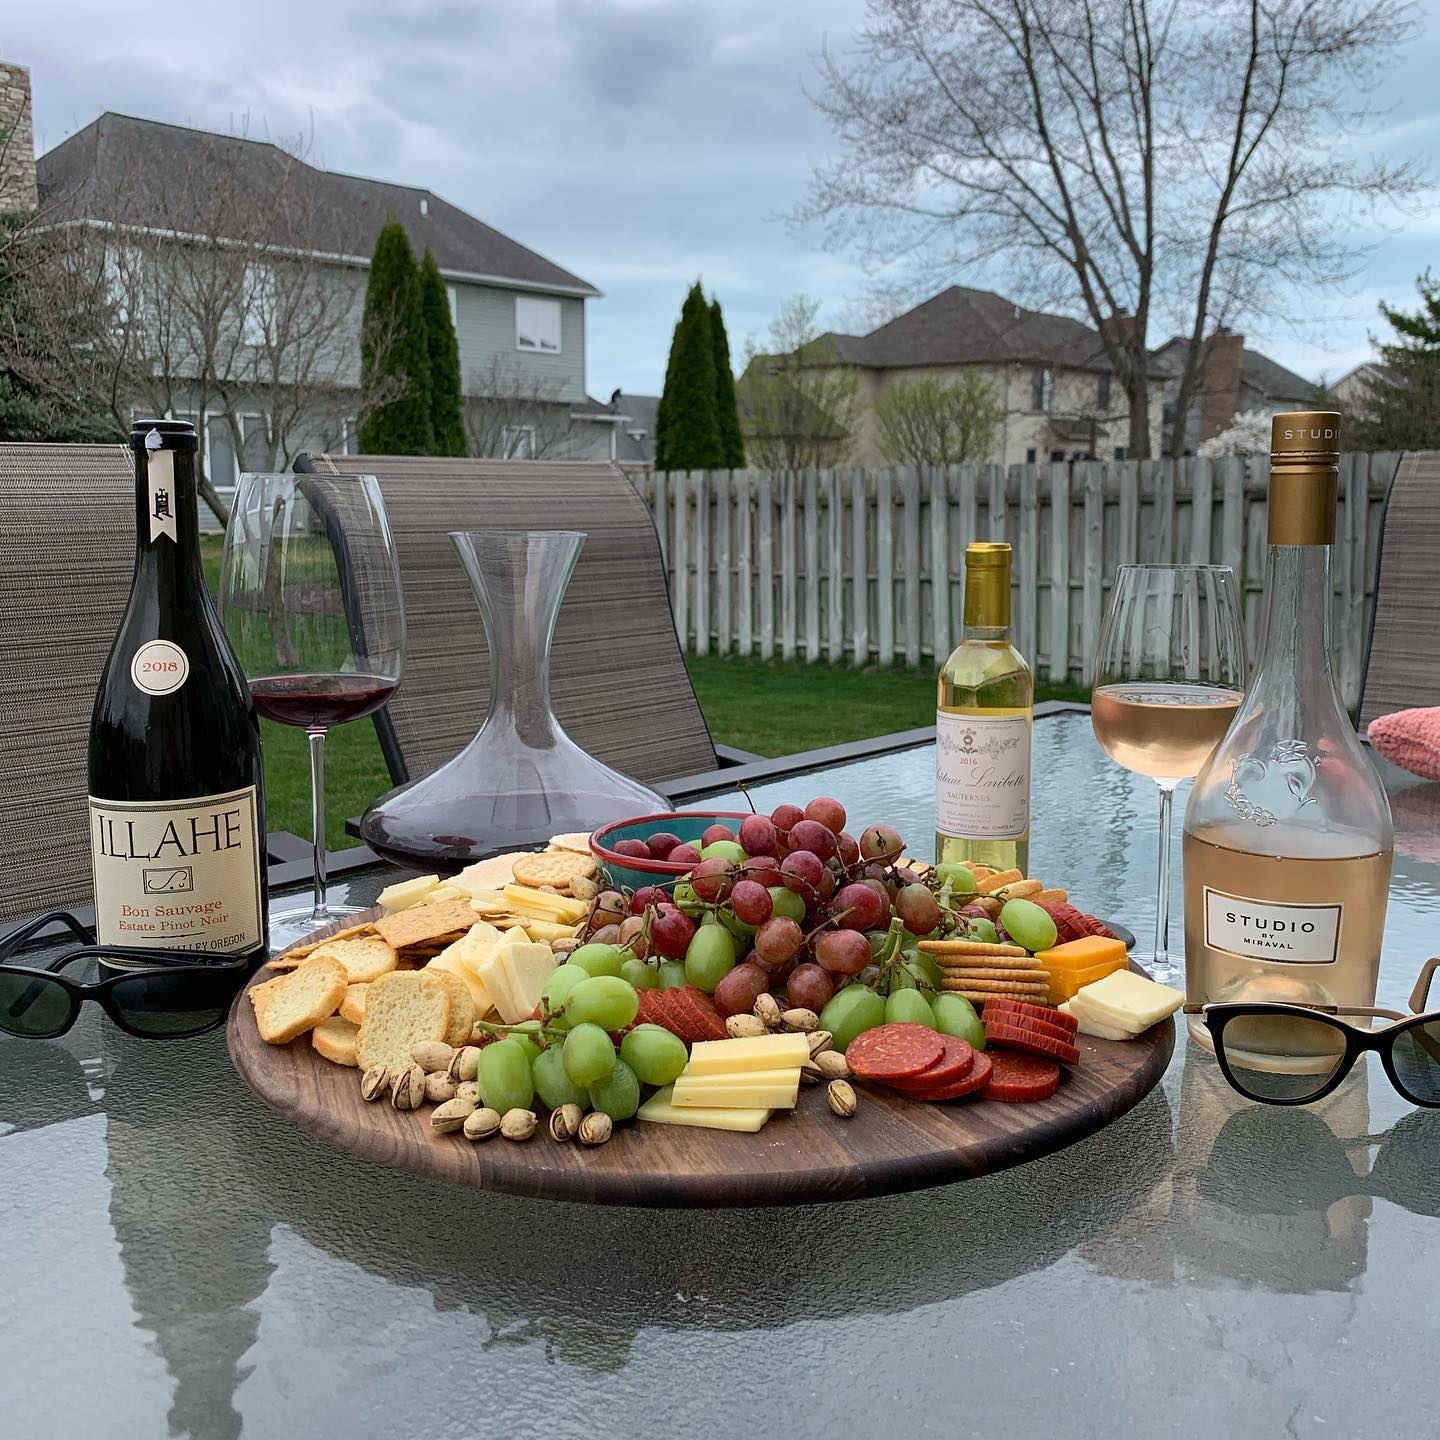 Lighthouse Wine Shop: A Beacon to Great Vino in Southwest Michigan